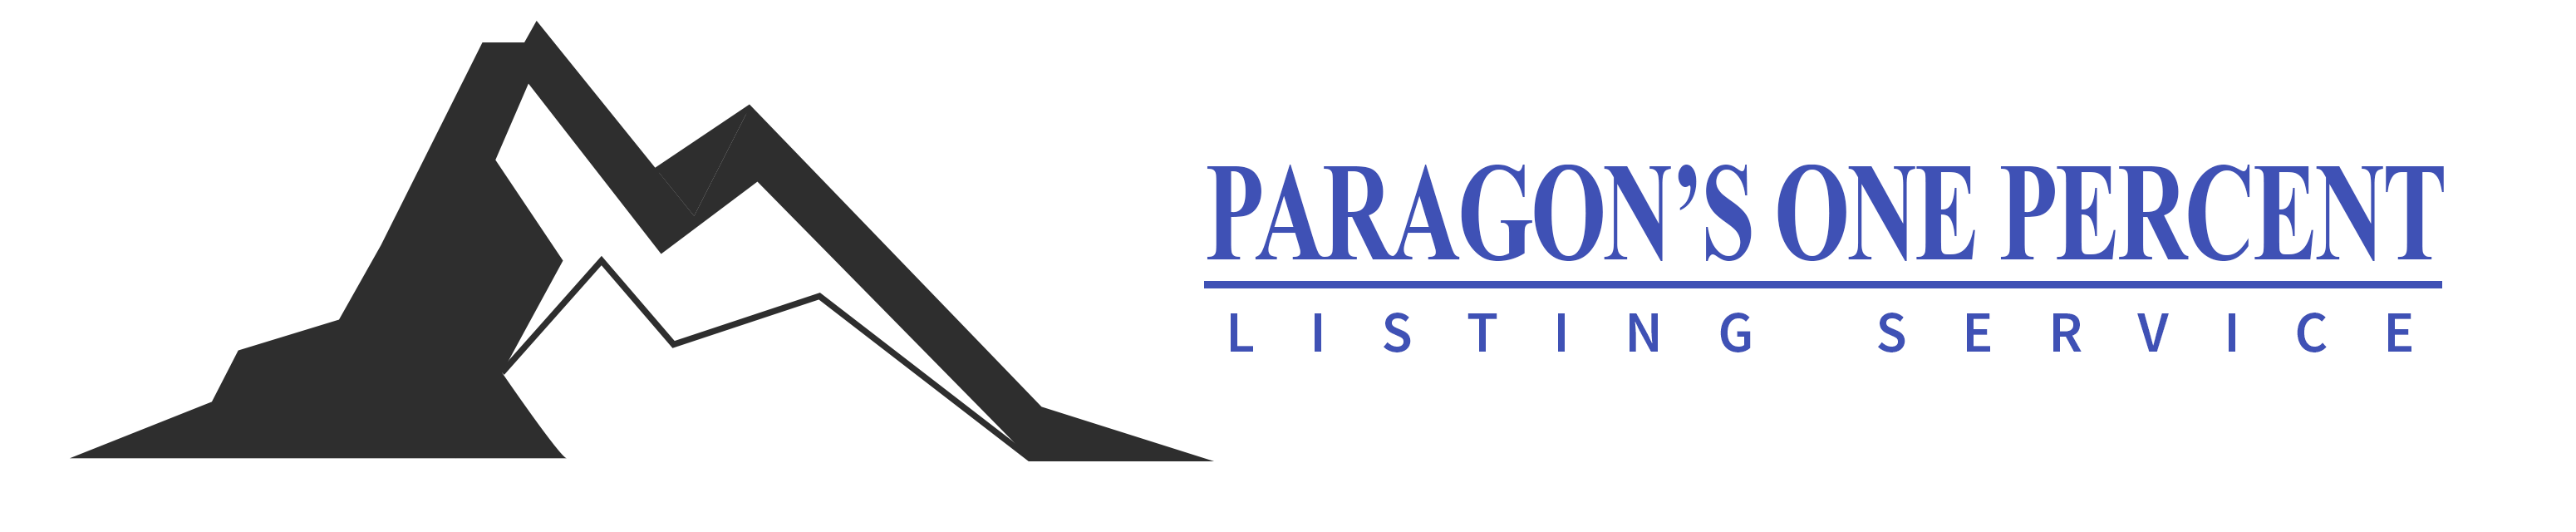 Paragons one percent listing service